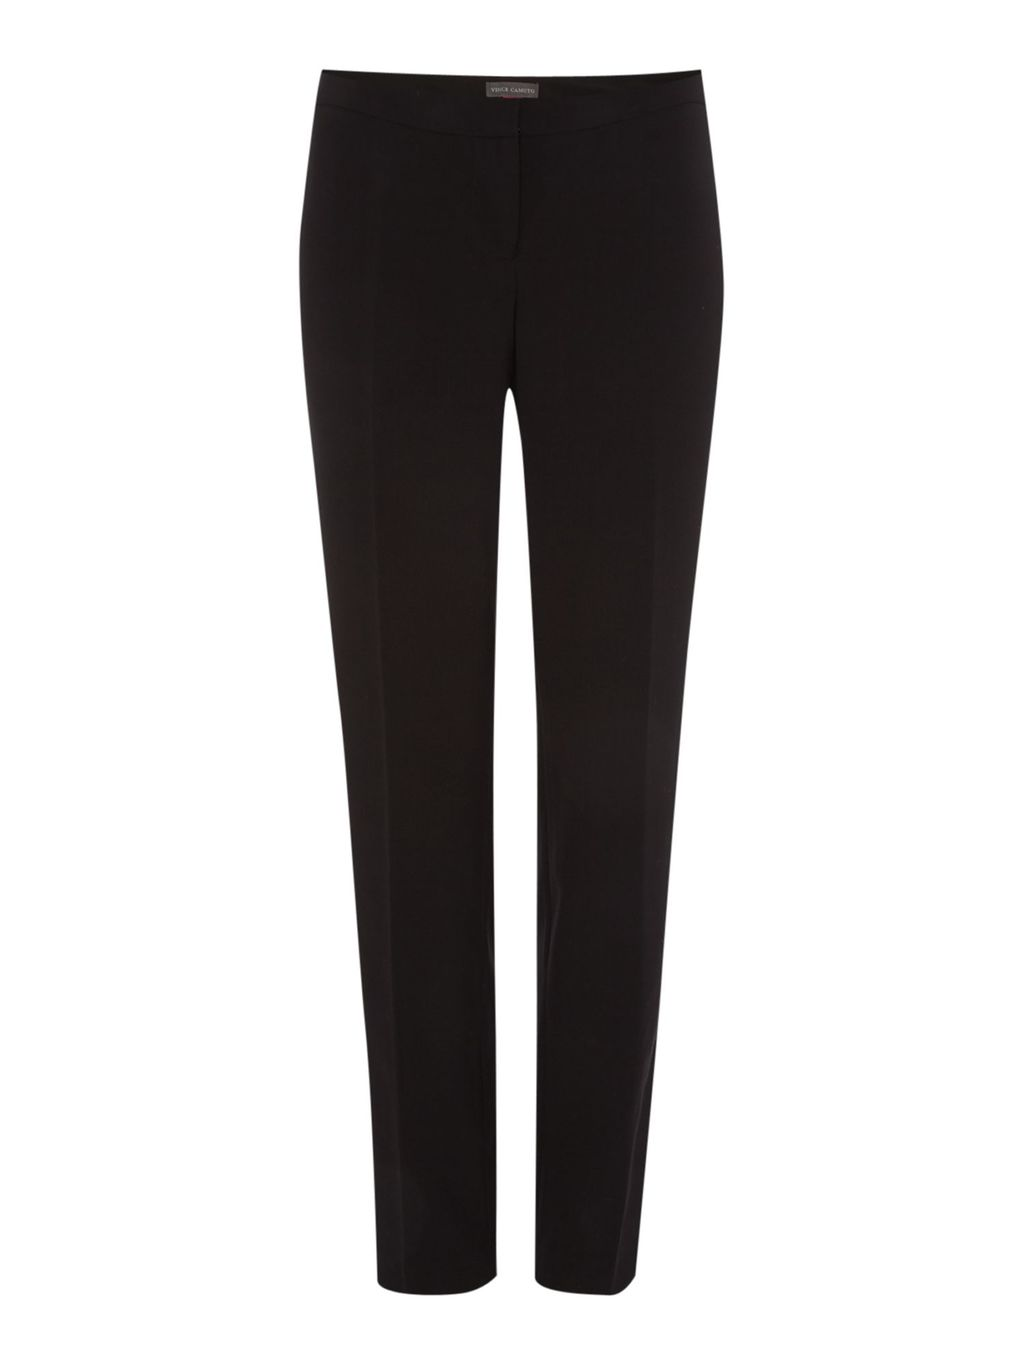 Zip Front Colourblock Trousers, Black - length: standard; pattern: plain; style: peg leg; waist: mid/regular rise; predominant colour: black; occasions: work; fibres: polyester/polyamide - mix; fit: tapered; pattern type: fabric; texture group: woven light midweight; season: a/w 2015; wardrobe: basic